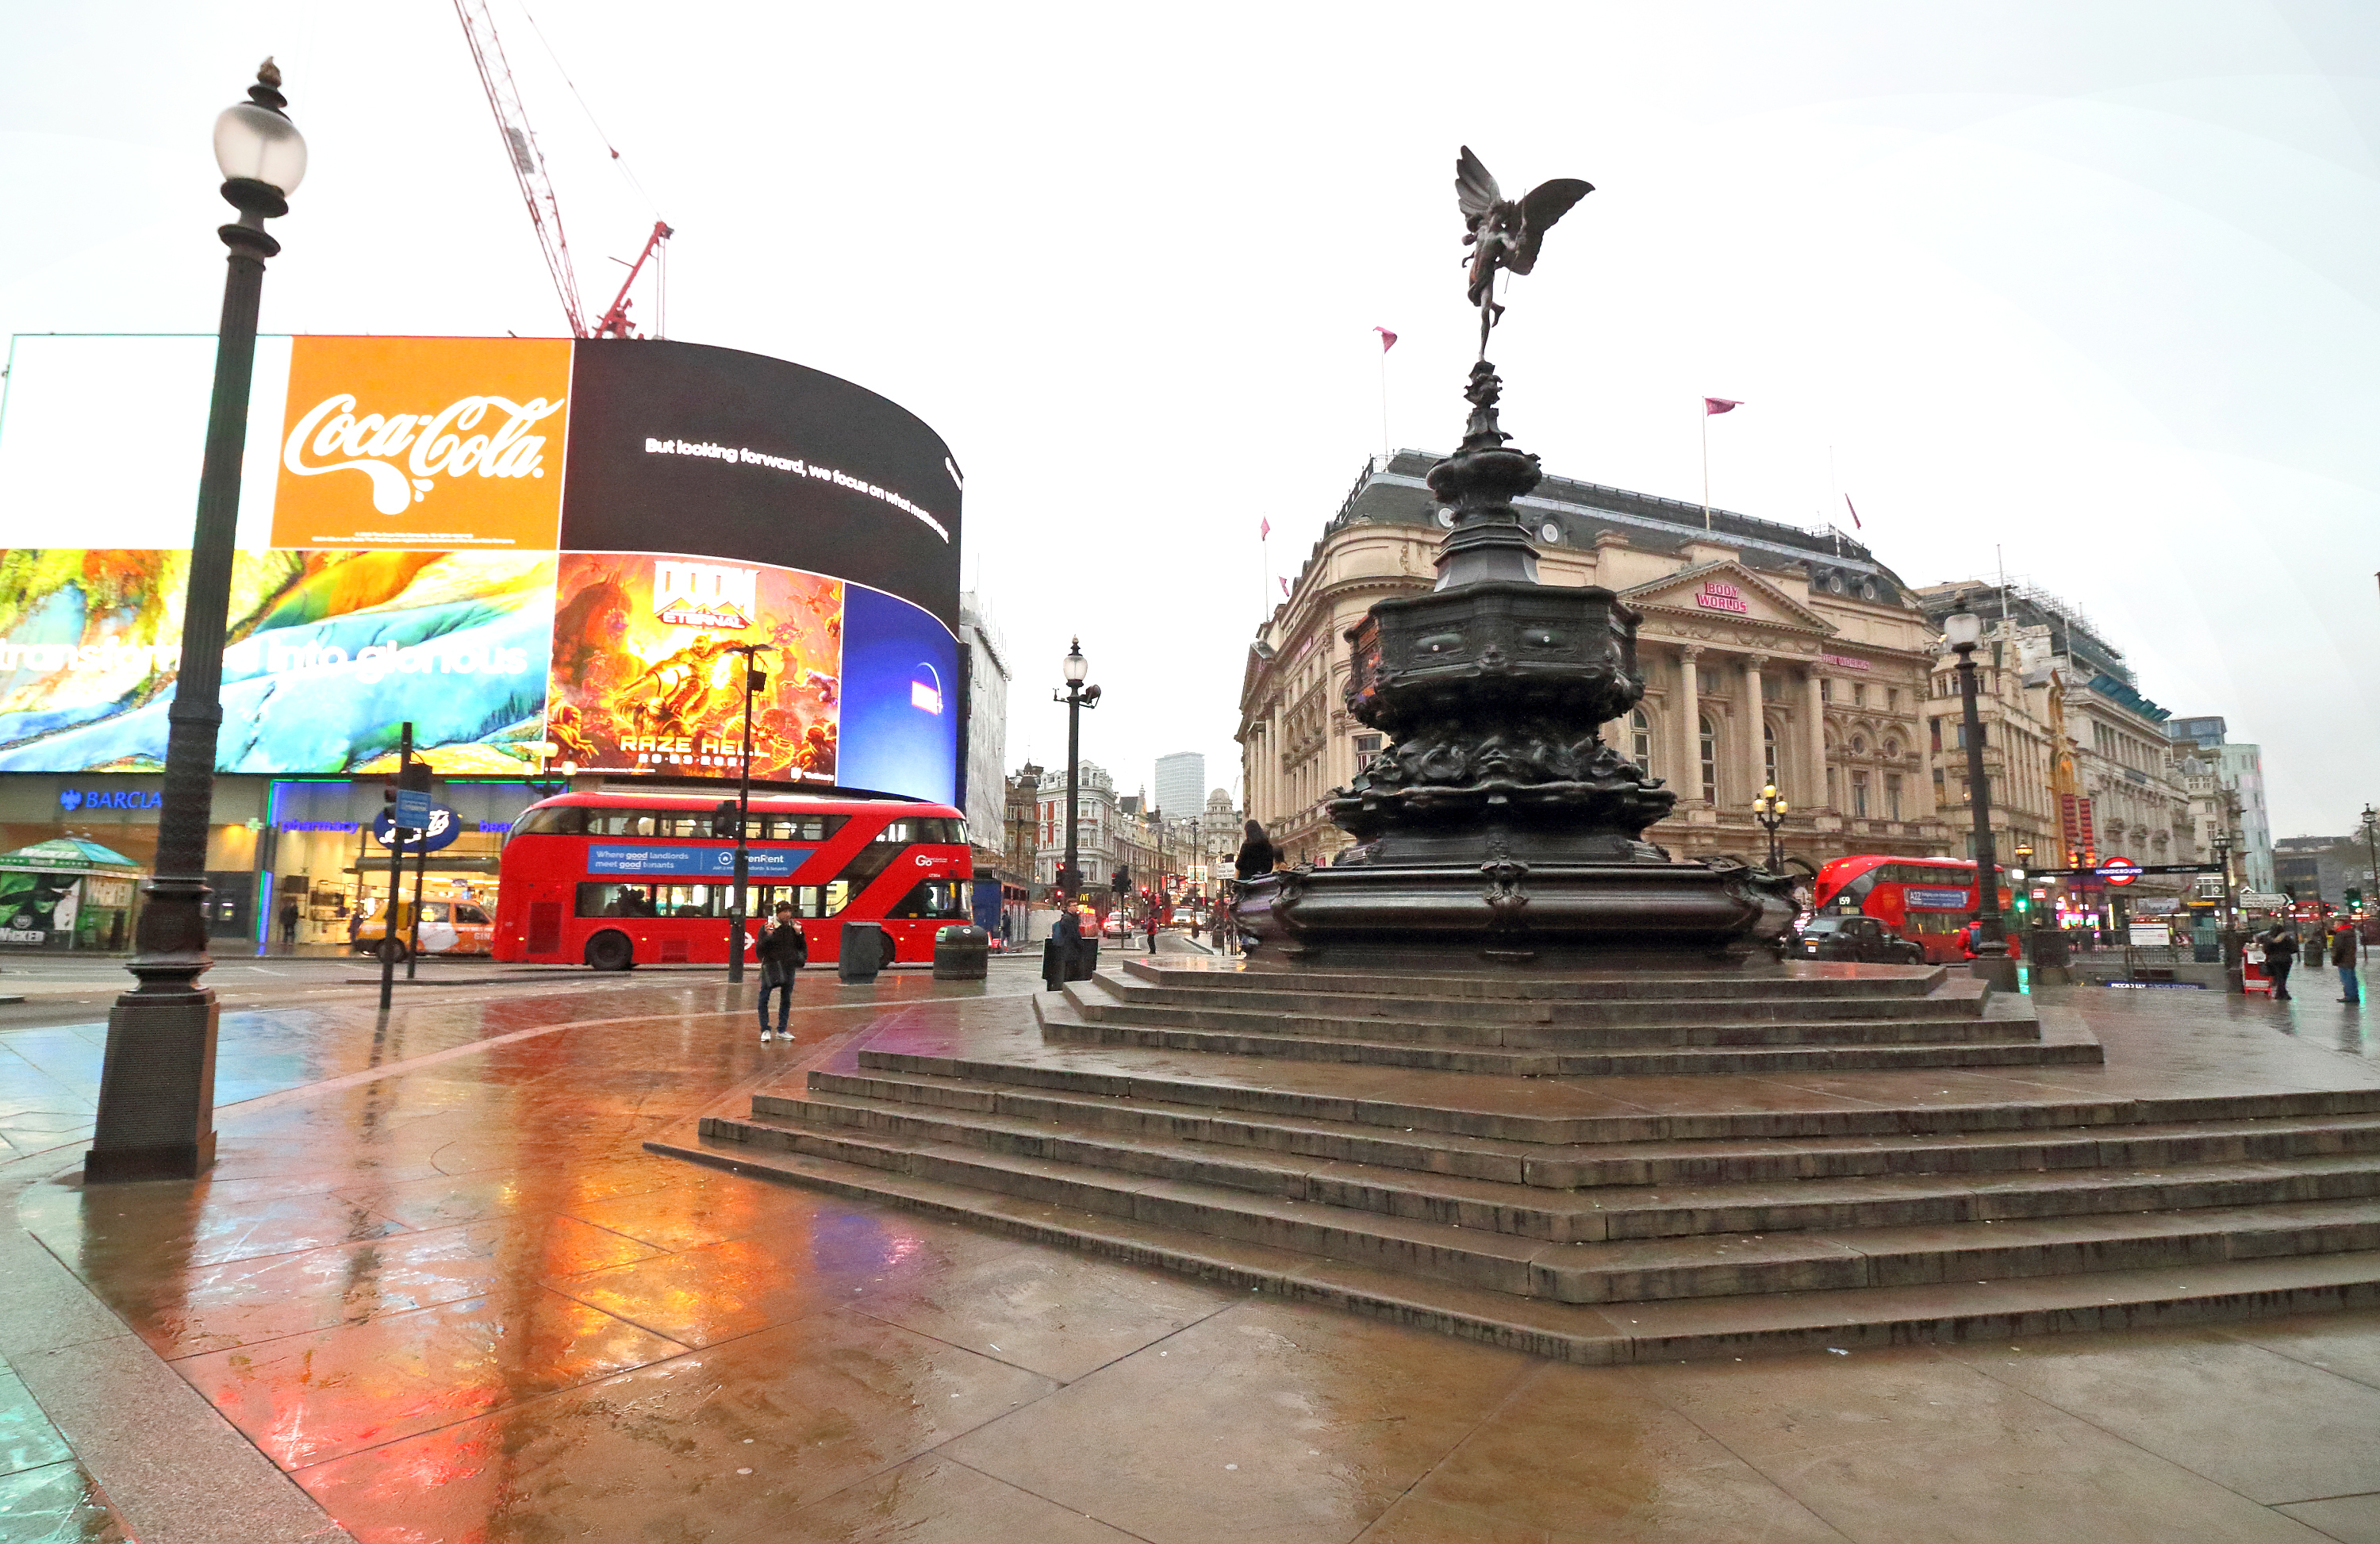 View of a deserted Piccadilly Circus public space amid Coronavirus threats in London. UK Government is drawing up plans to enforce closure of restaurants, bars and cinemas in the capital and restrict use of public transport. The expected 'London Lock down' has already seen large empty spaces where tourists usually gather and deserted streets around landmarks due to the threat of a further spread of coronavirus. (Photo by Keith Mayhew / SOPA Images/Sipa USA)